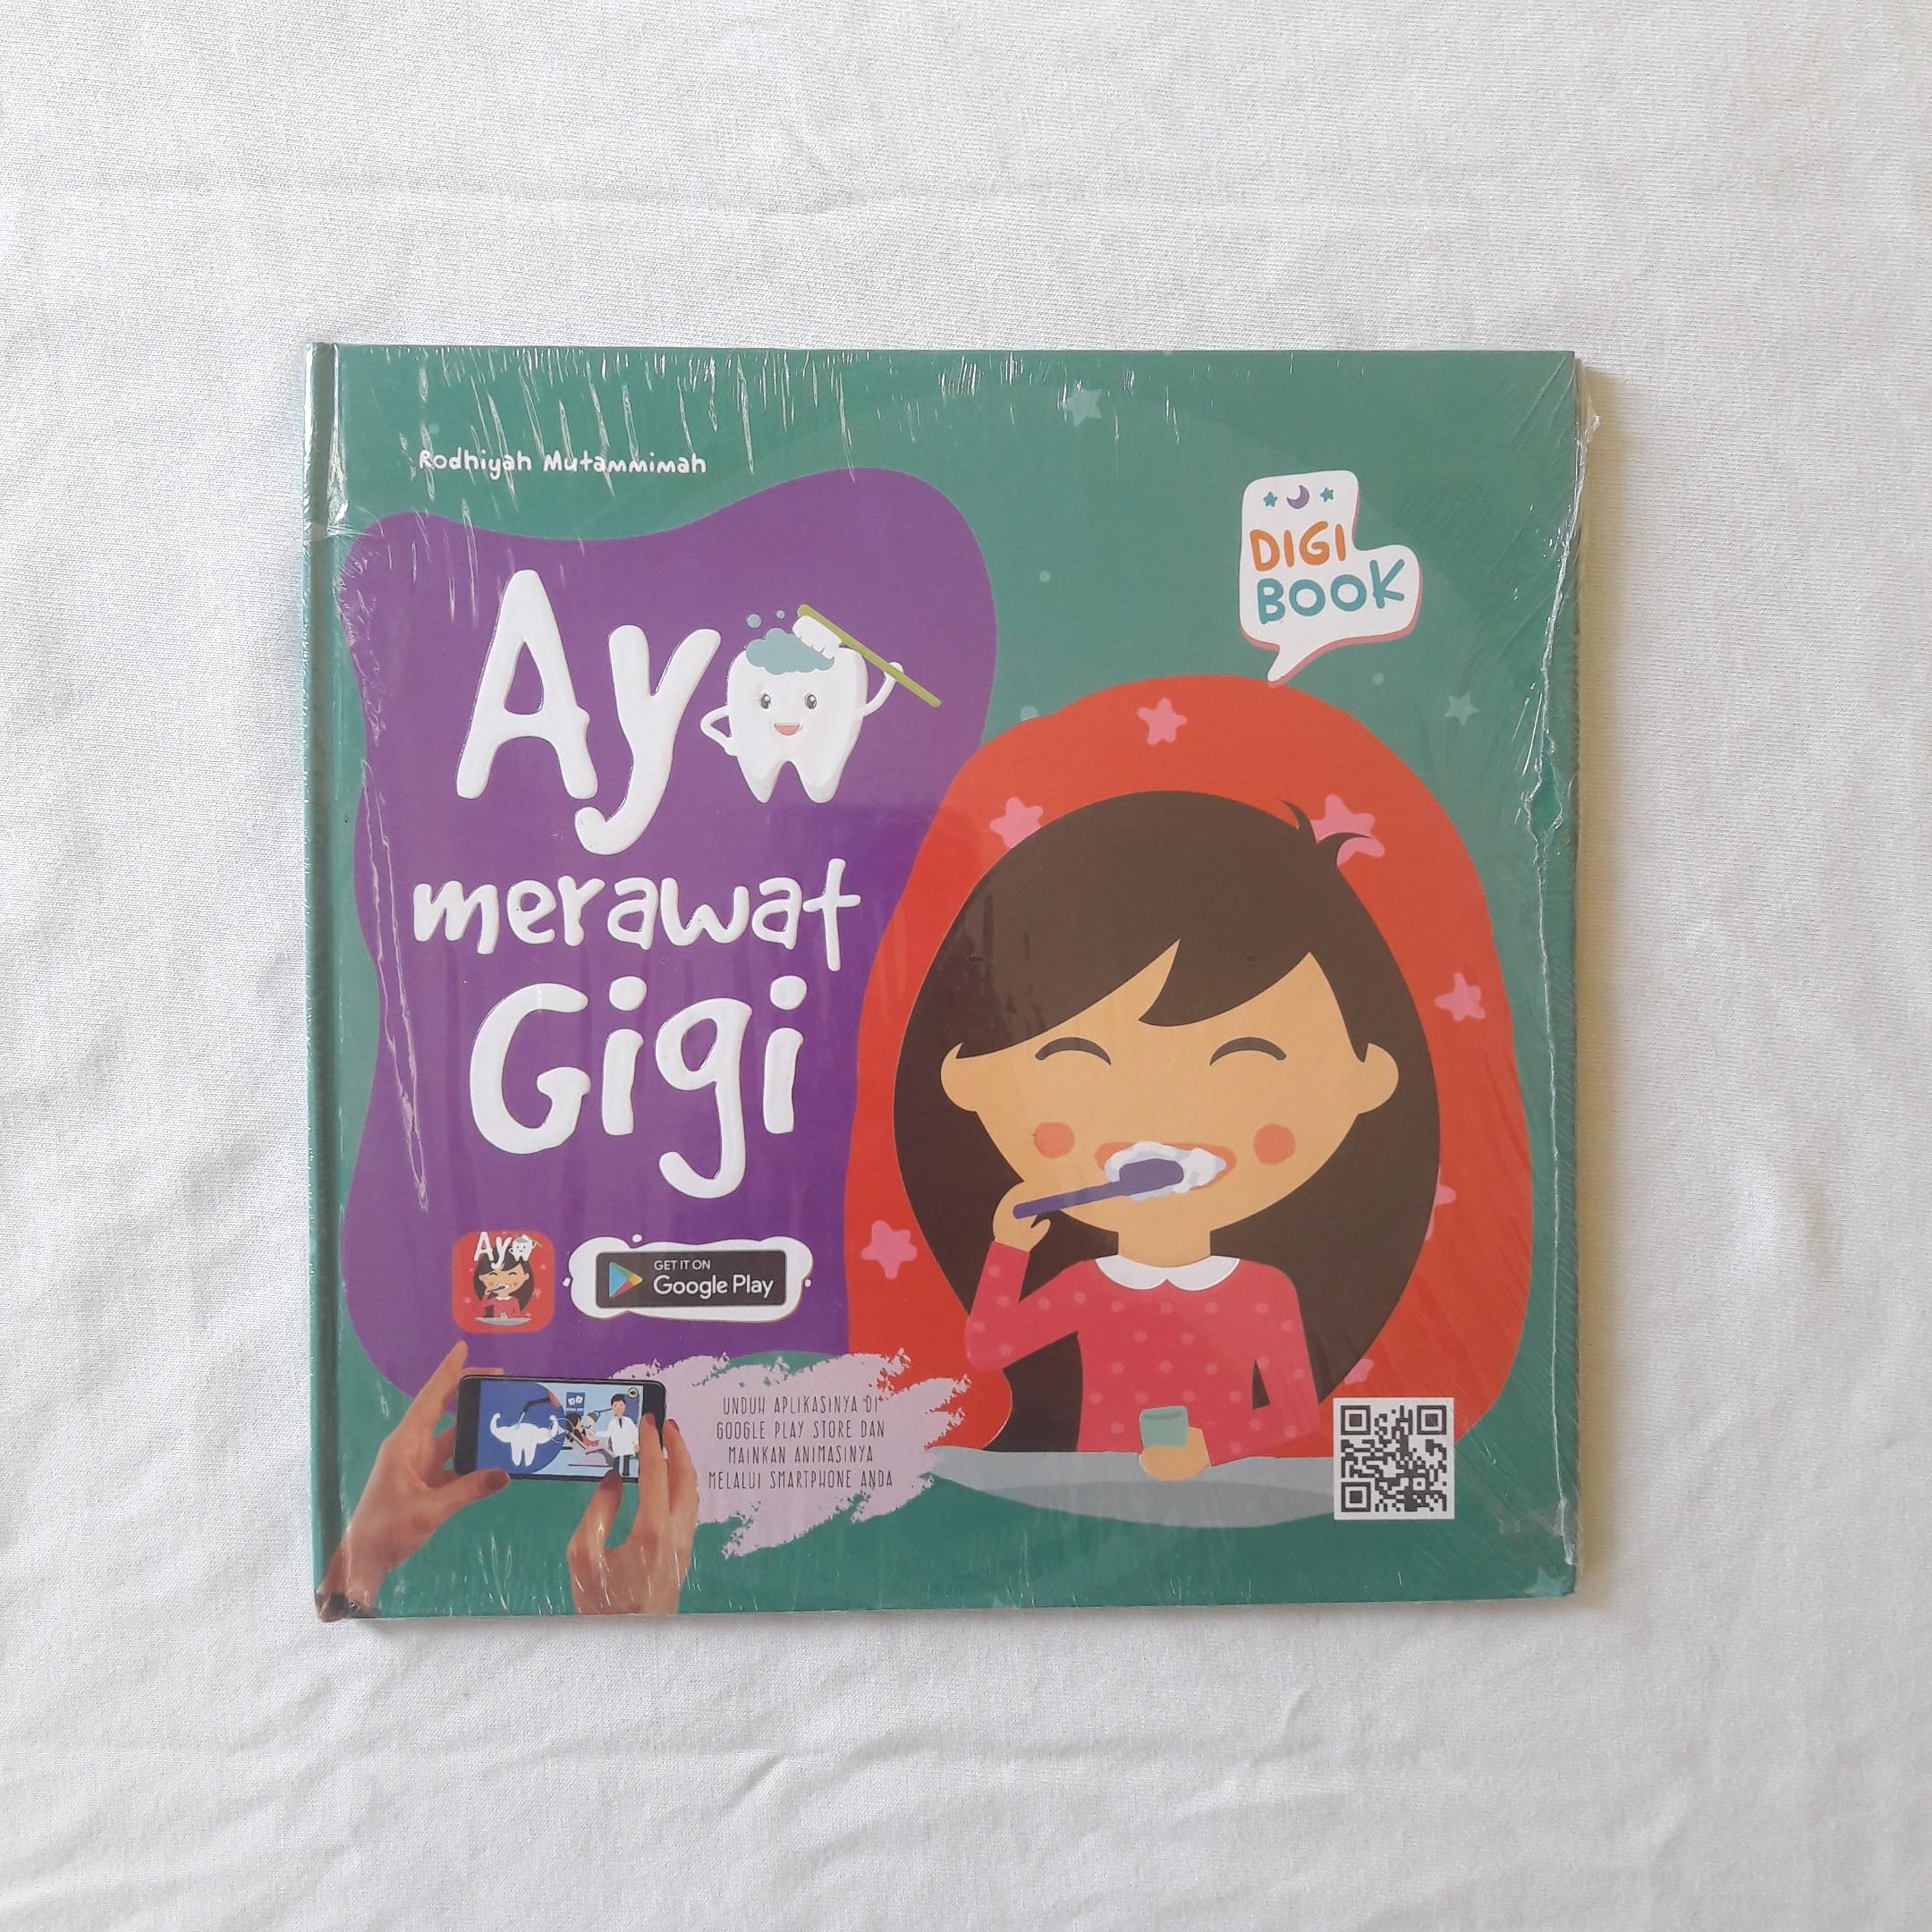 NEW SEGEL • Digibook Ayo Merawat Gigi